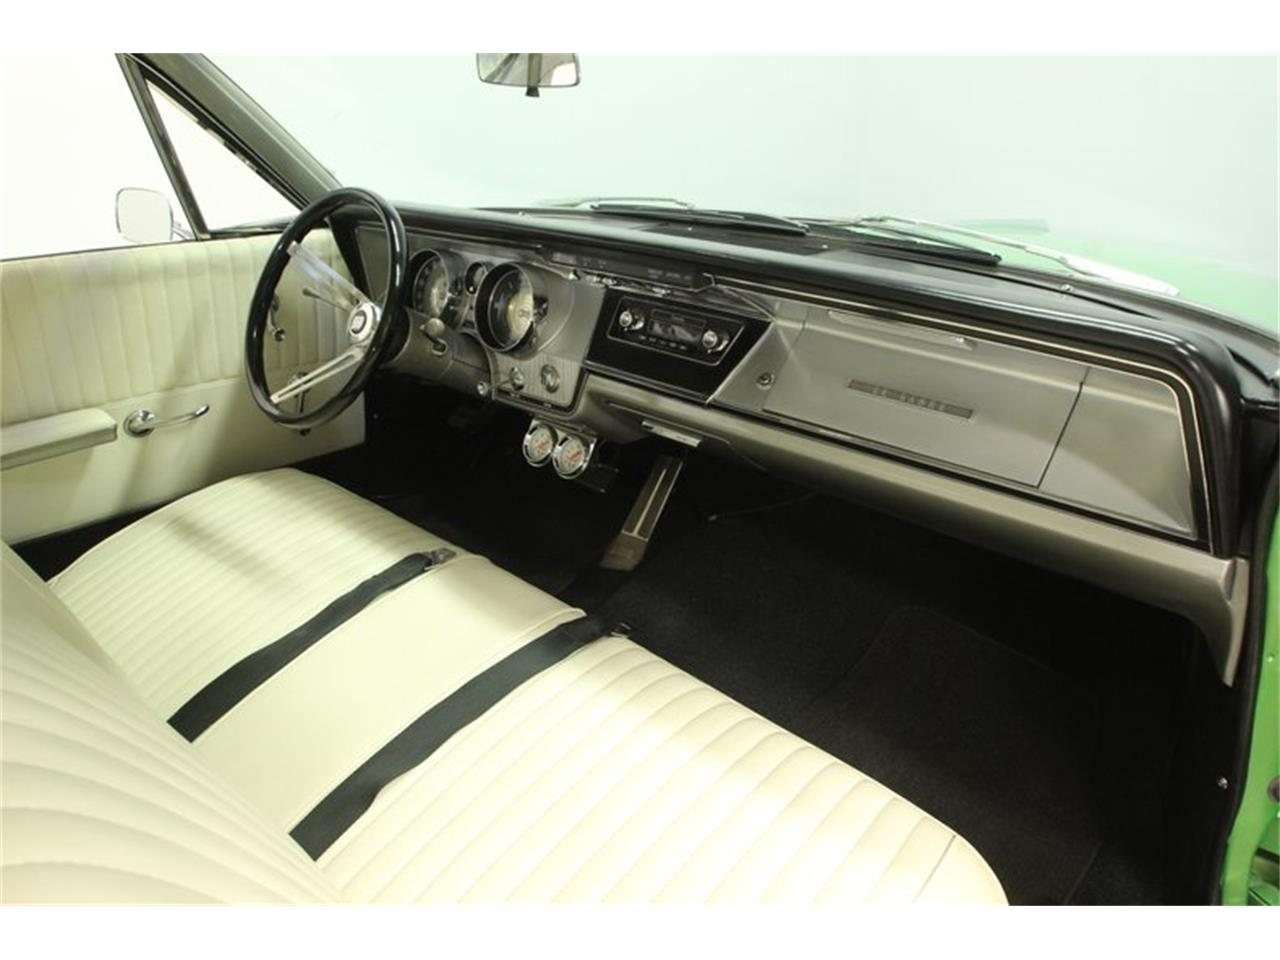 1964 Buick LeSabre (CC-1231327) for sale in Lutz, Florida